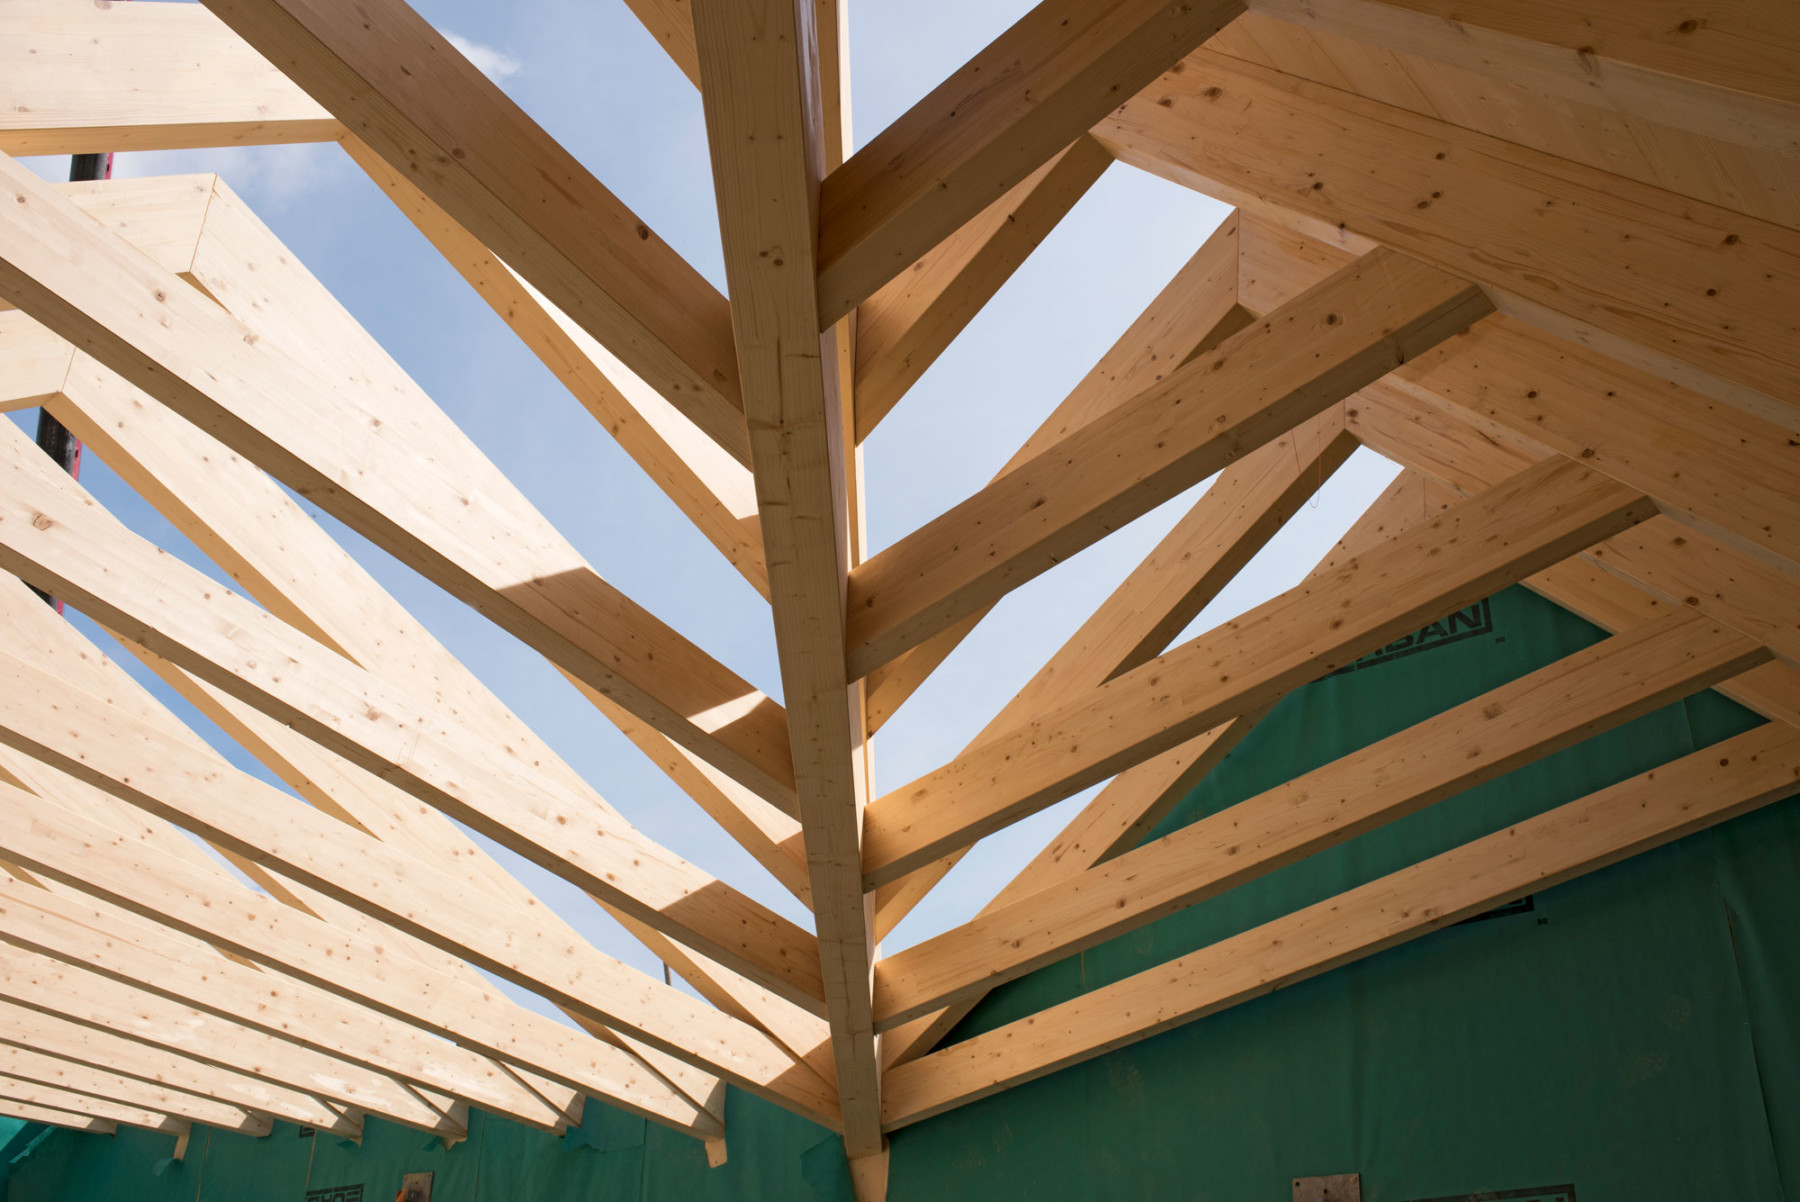 charleston-barns-timber-gallery-cultural-jamie-fobert-architects-roof